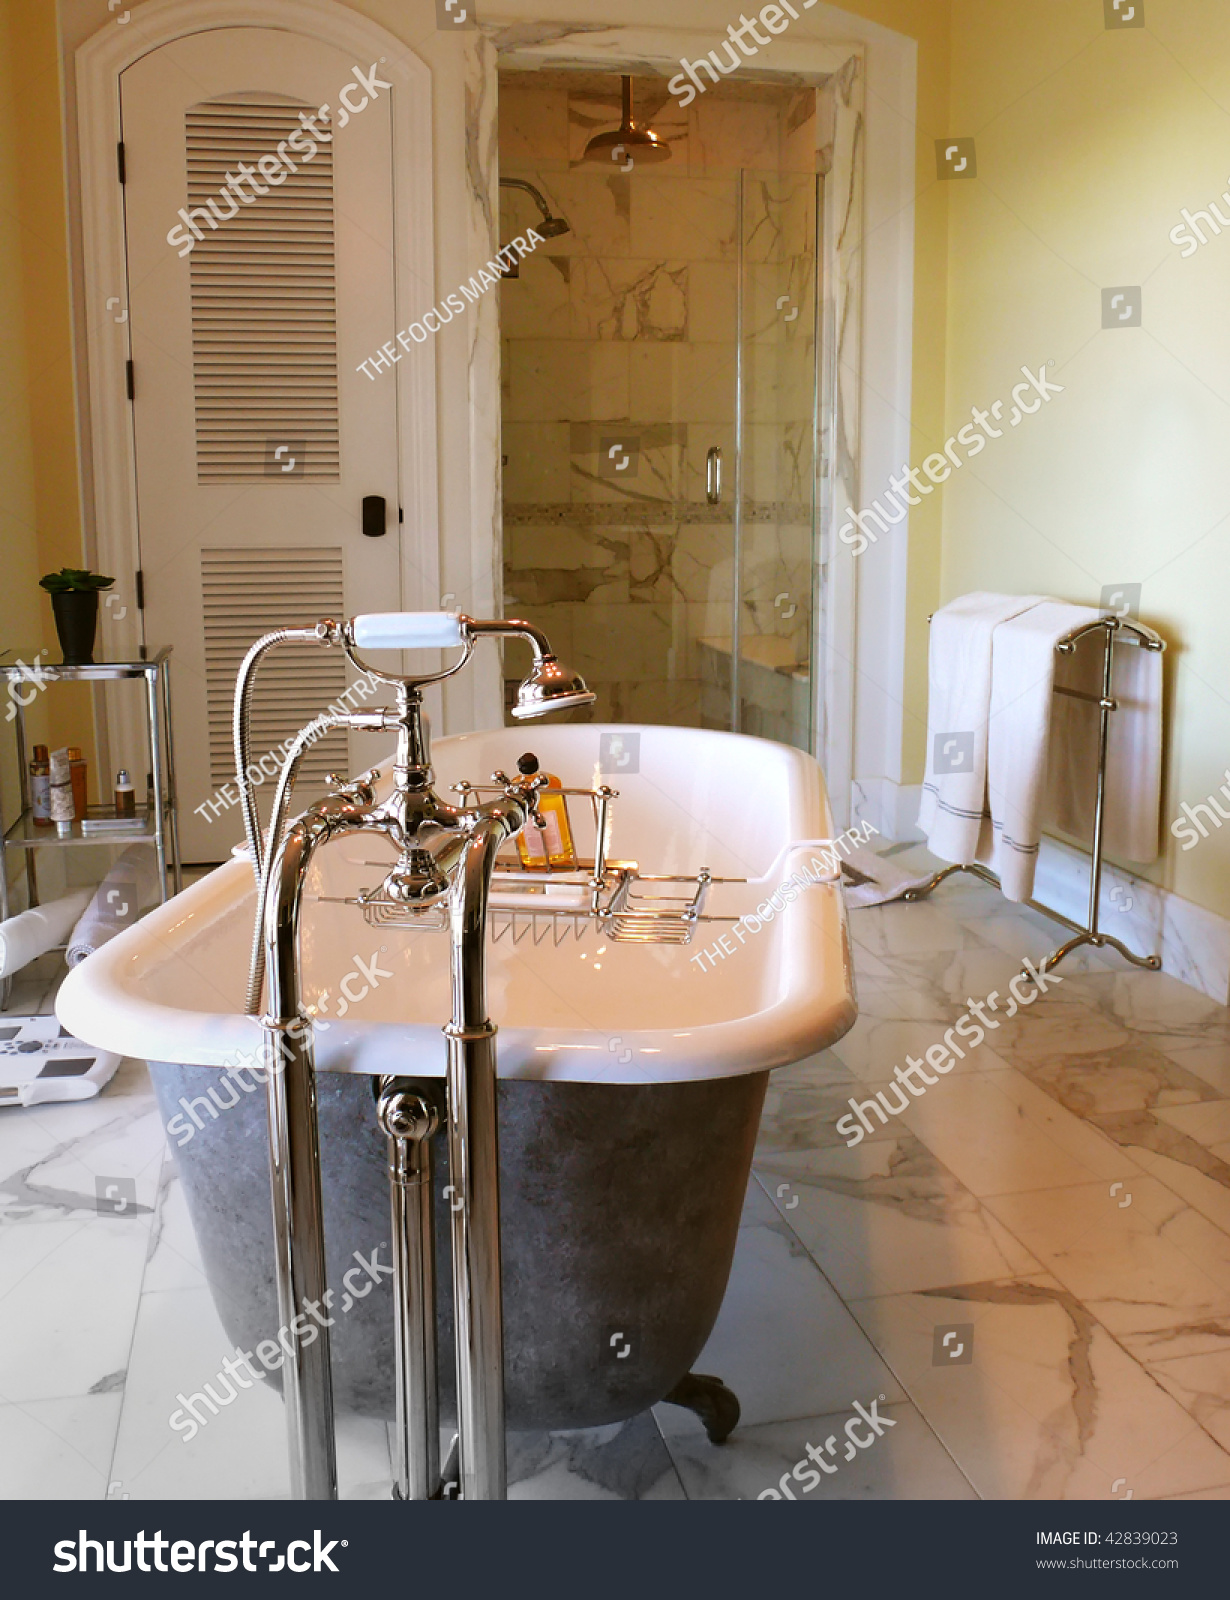 Great Tub Paint Huge Bathtub Refinishers Solid Bath Refinishing Service How To Paint A Tub Old Paint A Bathtub Coloured Paint For Tubs